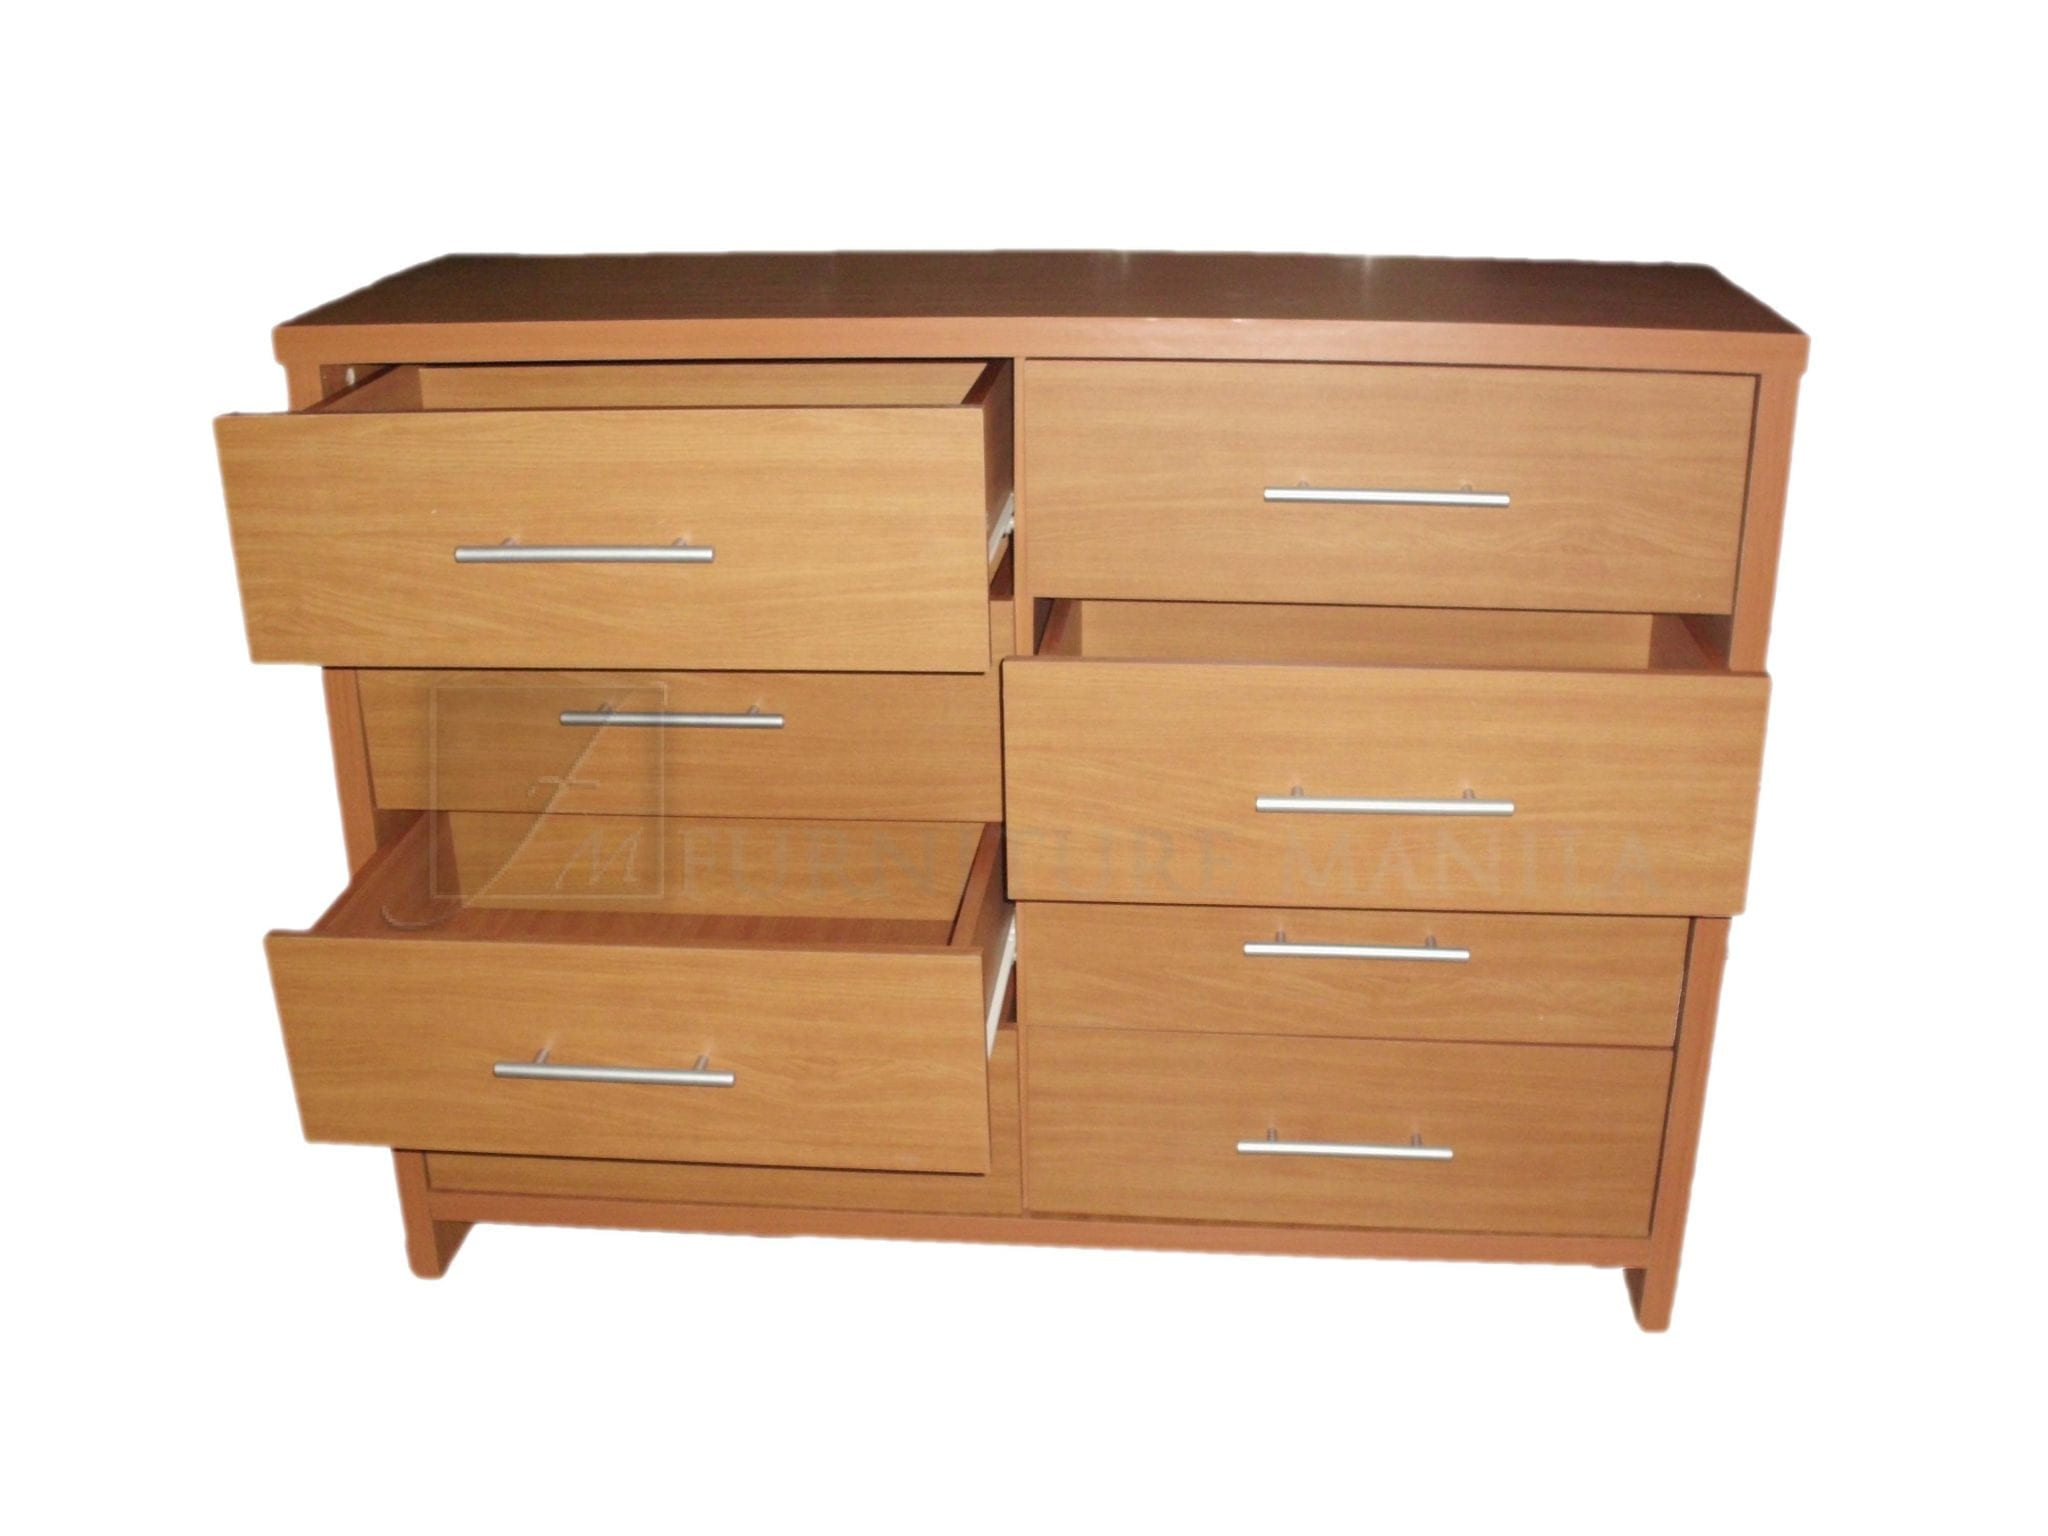 T8d chest of drawers home office furniture philippines Home furniture laguna philippines